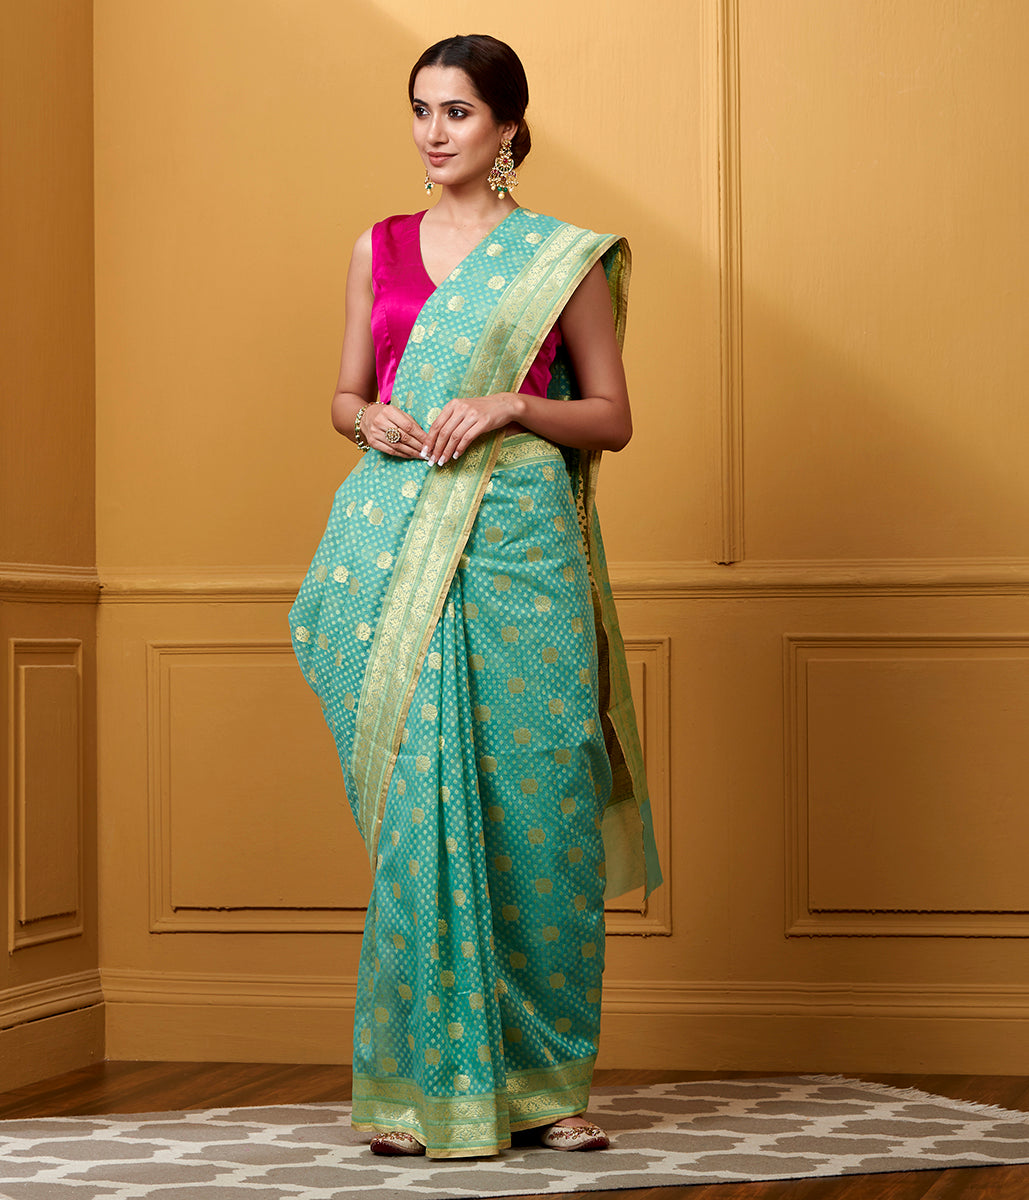 Handwoven Green Kora Cotton Saree with small booti